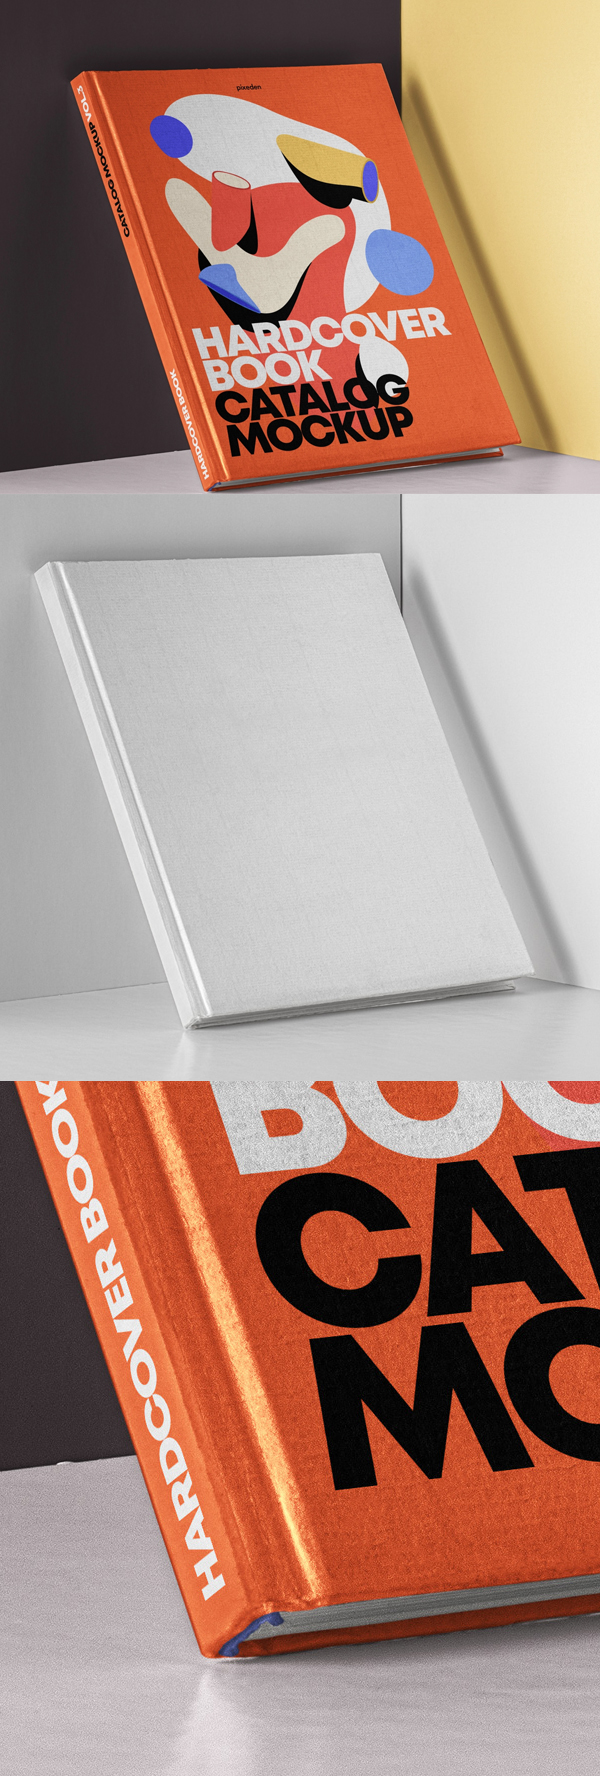 Free Psd Hardcover Book Catalog Mockup